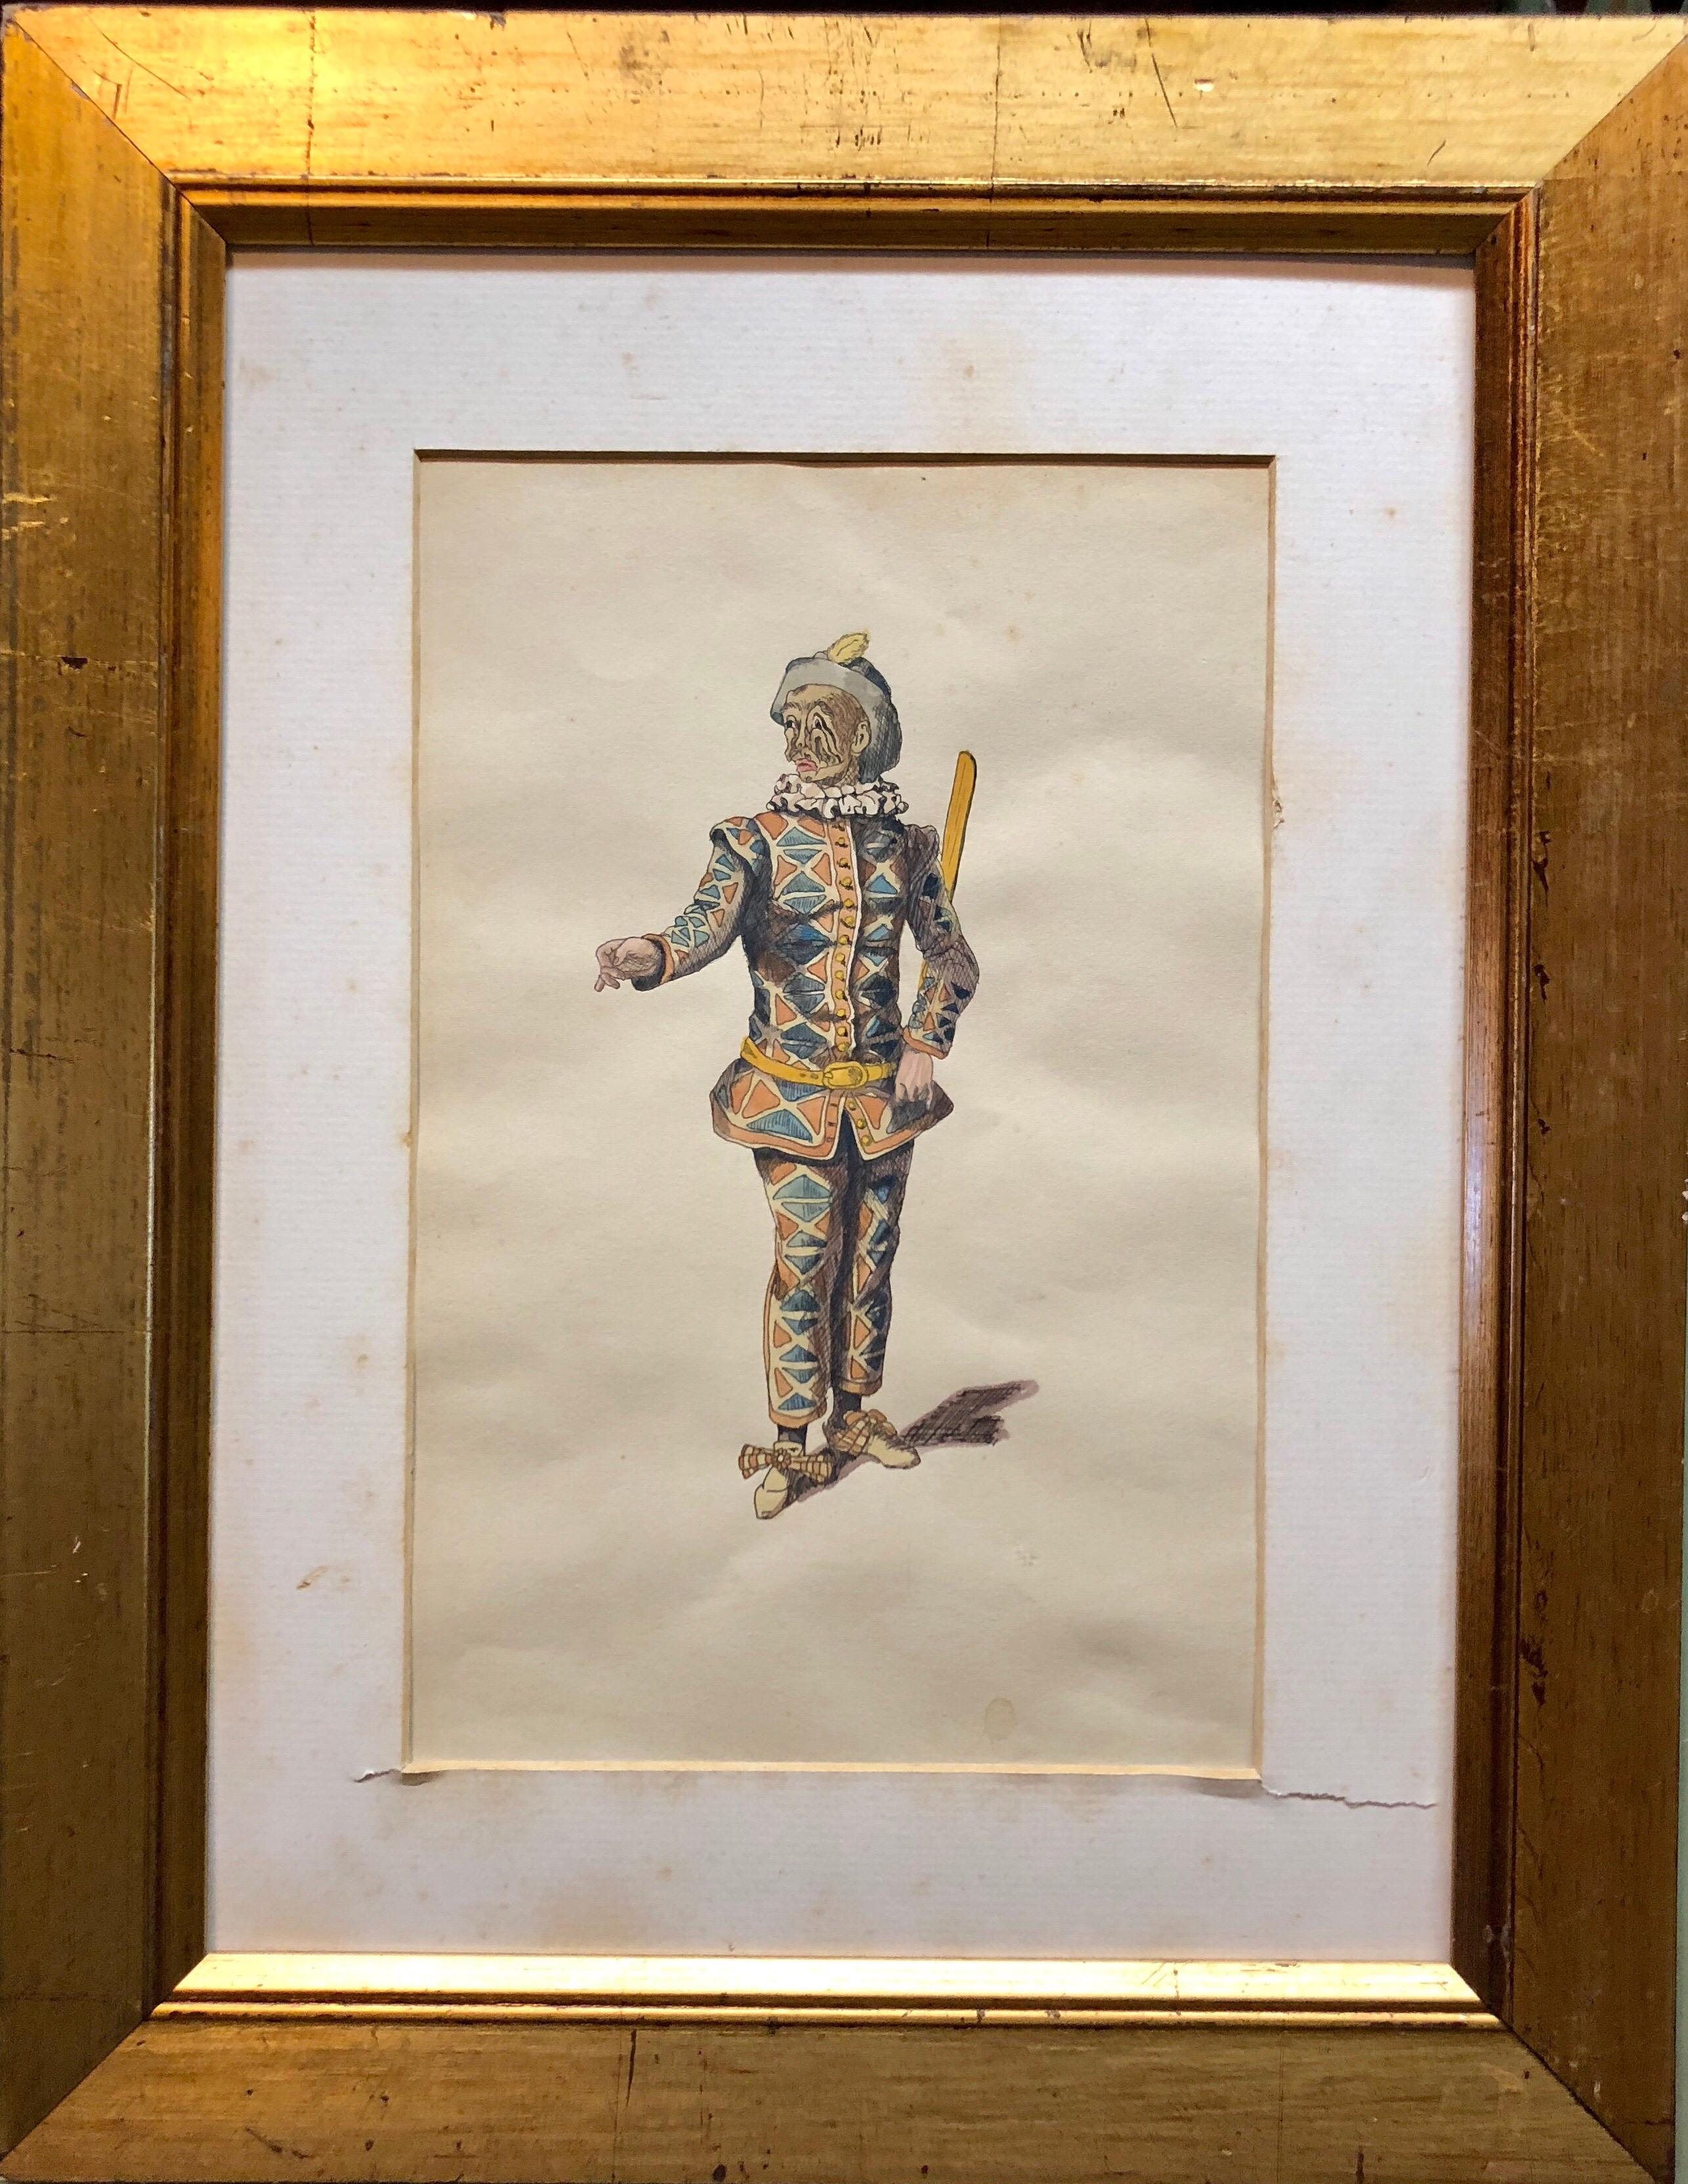 Costume Stage Drawing Medieval Jester or Harlequin Figure Watercolor Painting